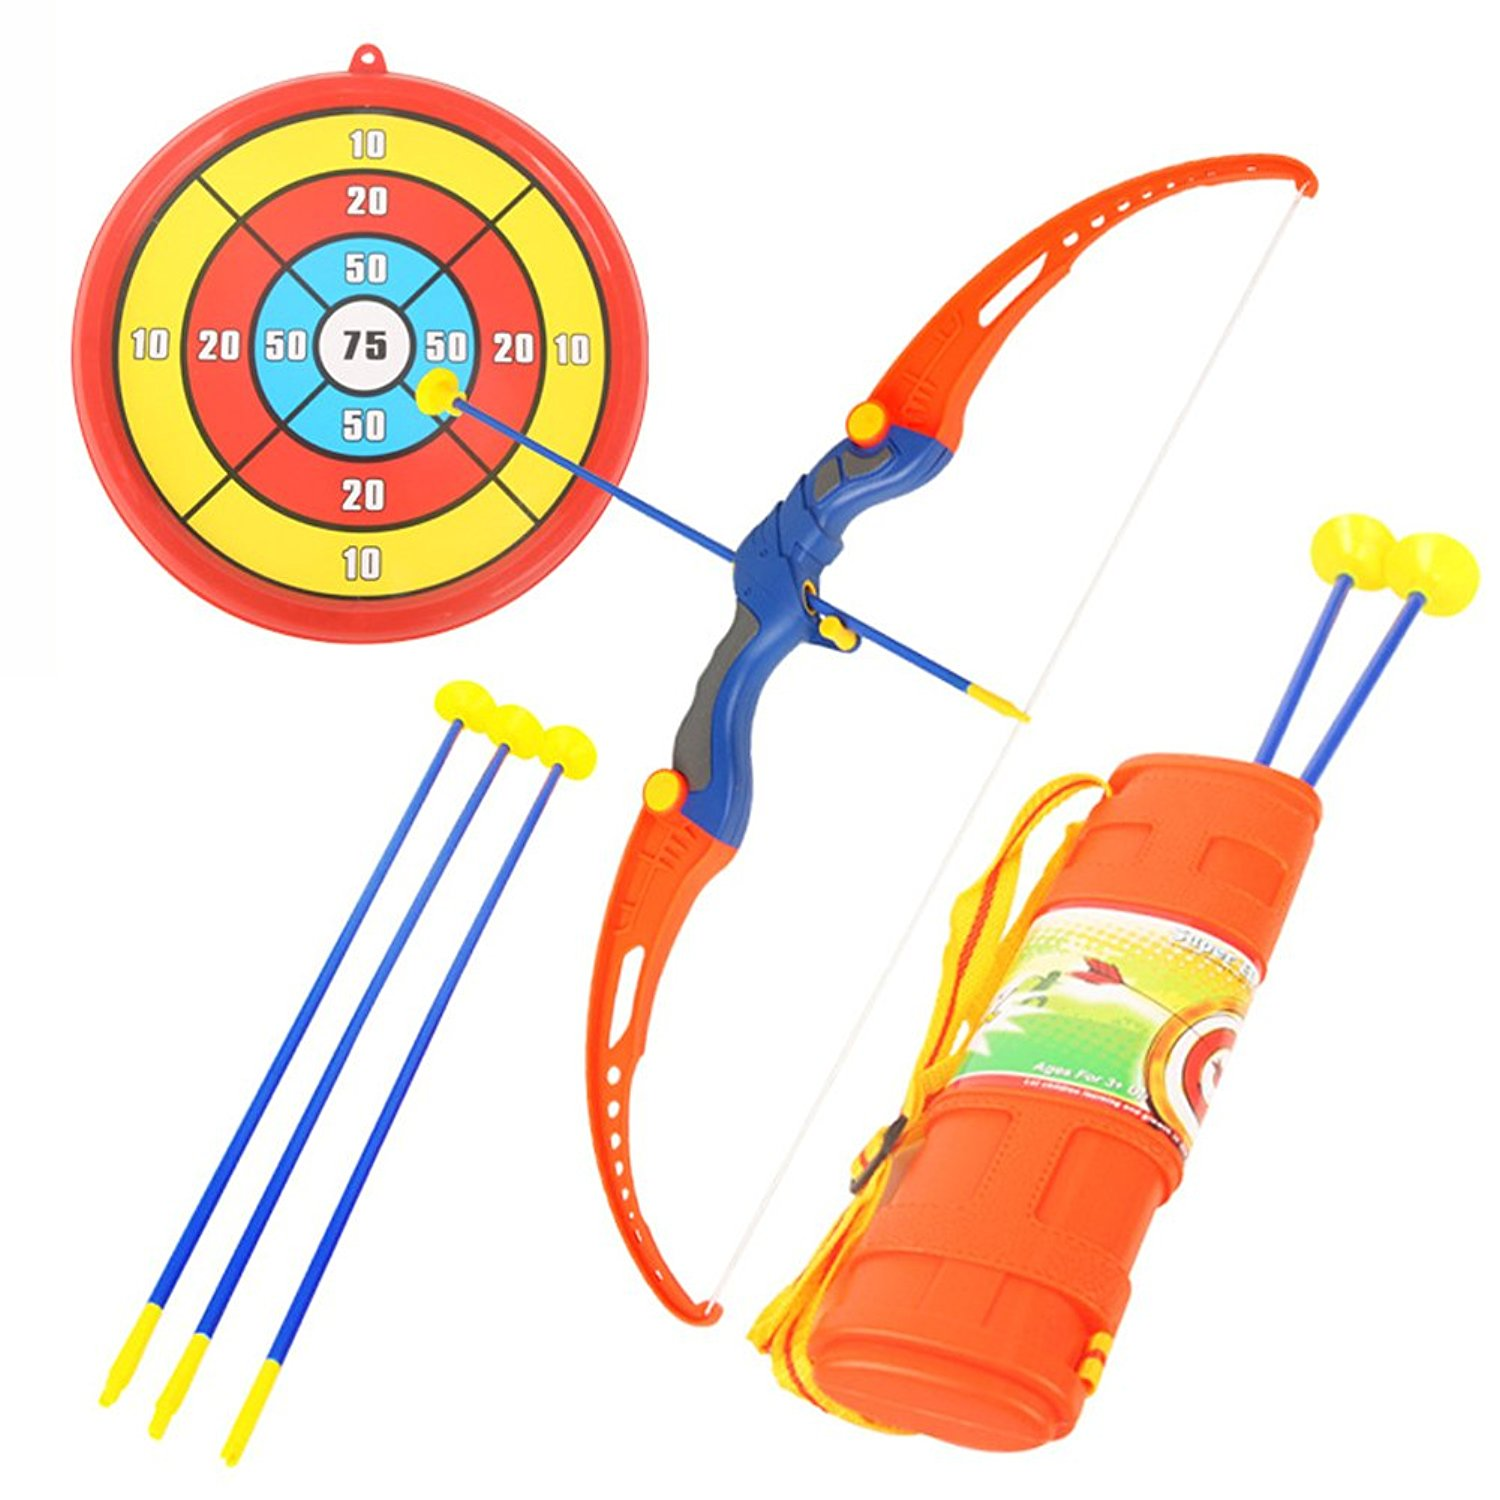 Buy vintage kids fun time target shooting dime store game toy on fun toy archery shooting set for kids with bow 3 suction cups target quiver m4hsunfo